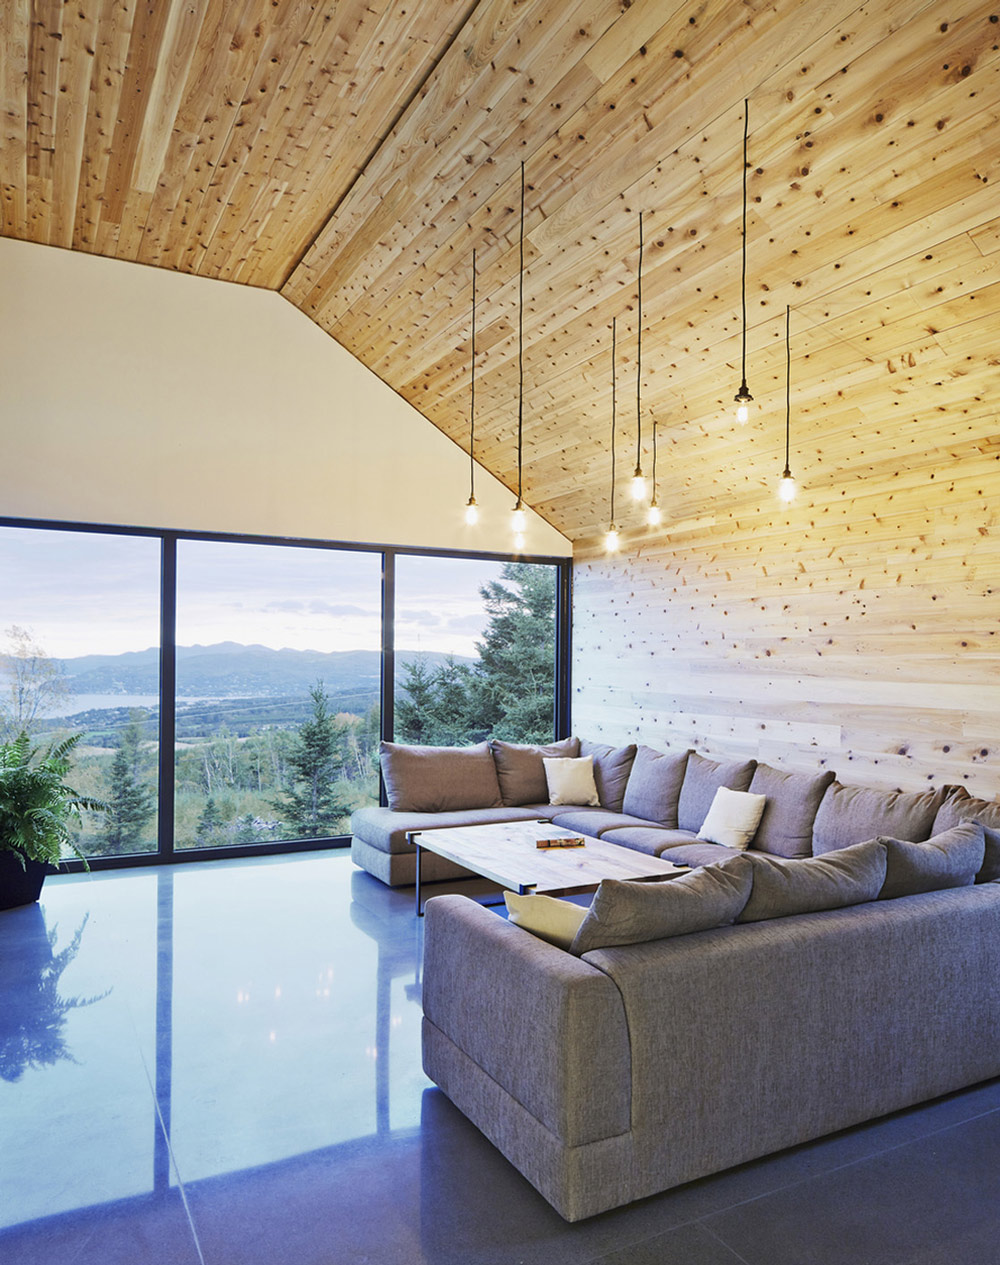 Sofa, Pendant Lighting, Large Windows, Malbaie VIII Residence in Charlevoix